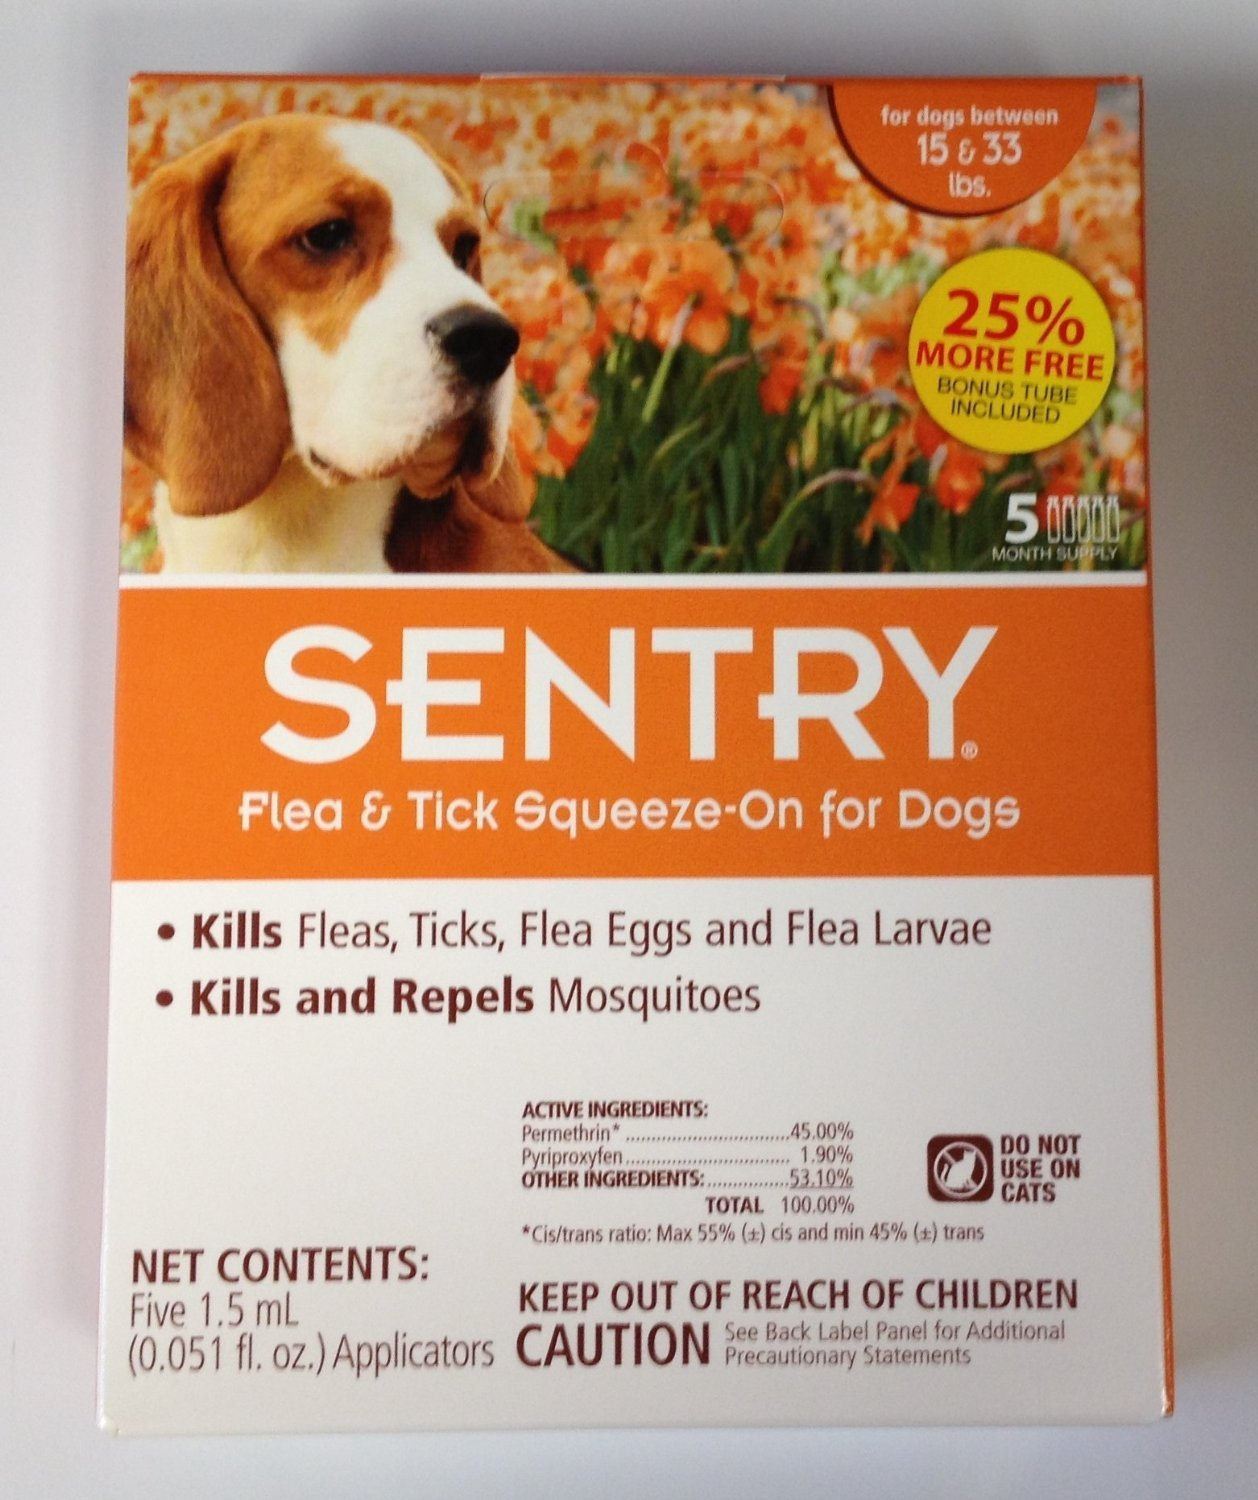 Sentry Sergeant's Pet Care Product 5 Count Flea and Tick Squeeze-On Dog Drop.